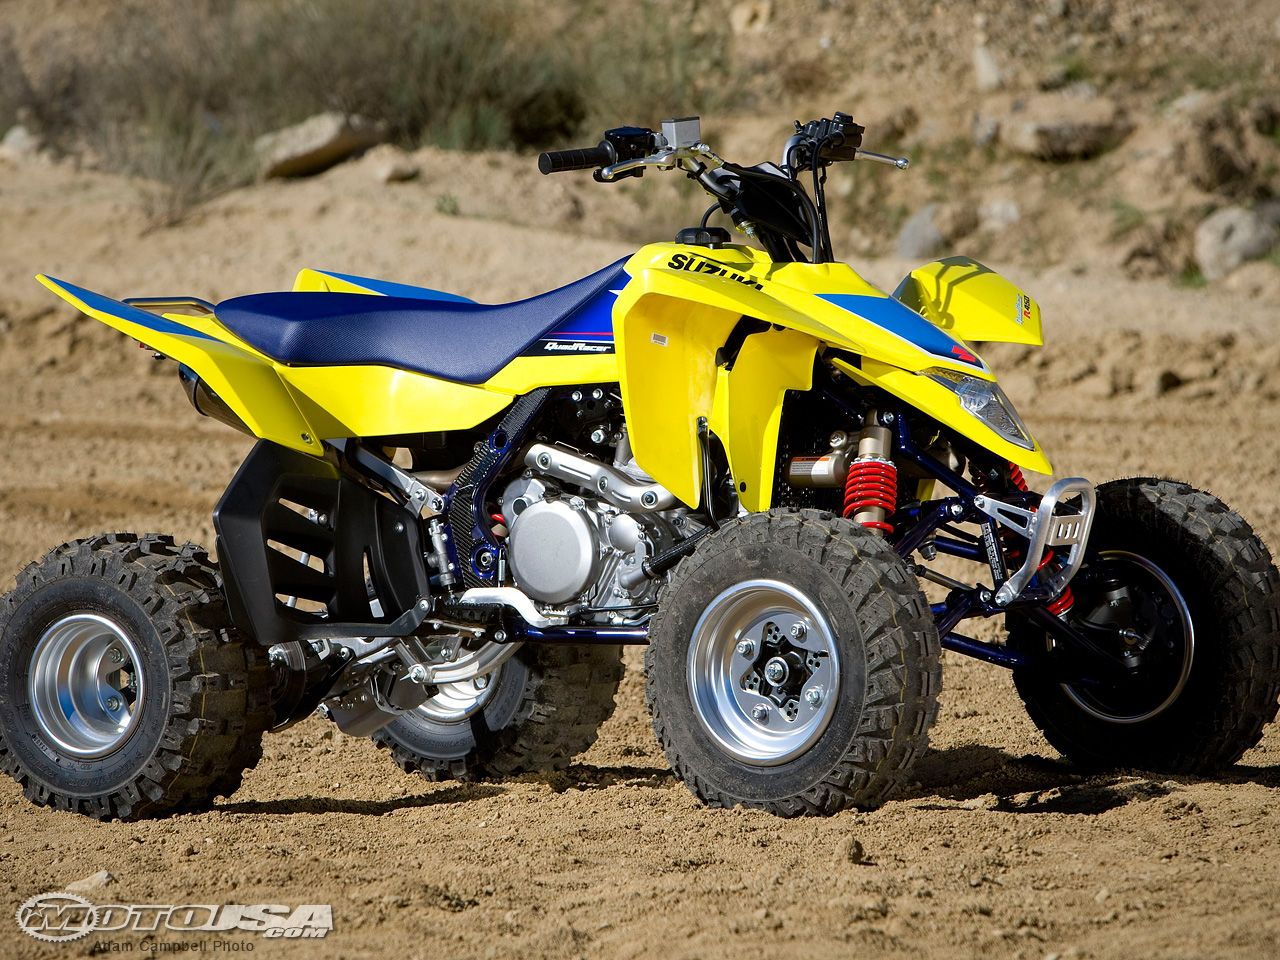 Suzuki quadsport 230 motorcycles pinterest atv dirtbikes and dirt biking